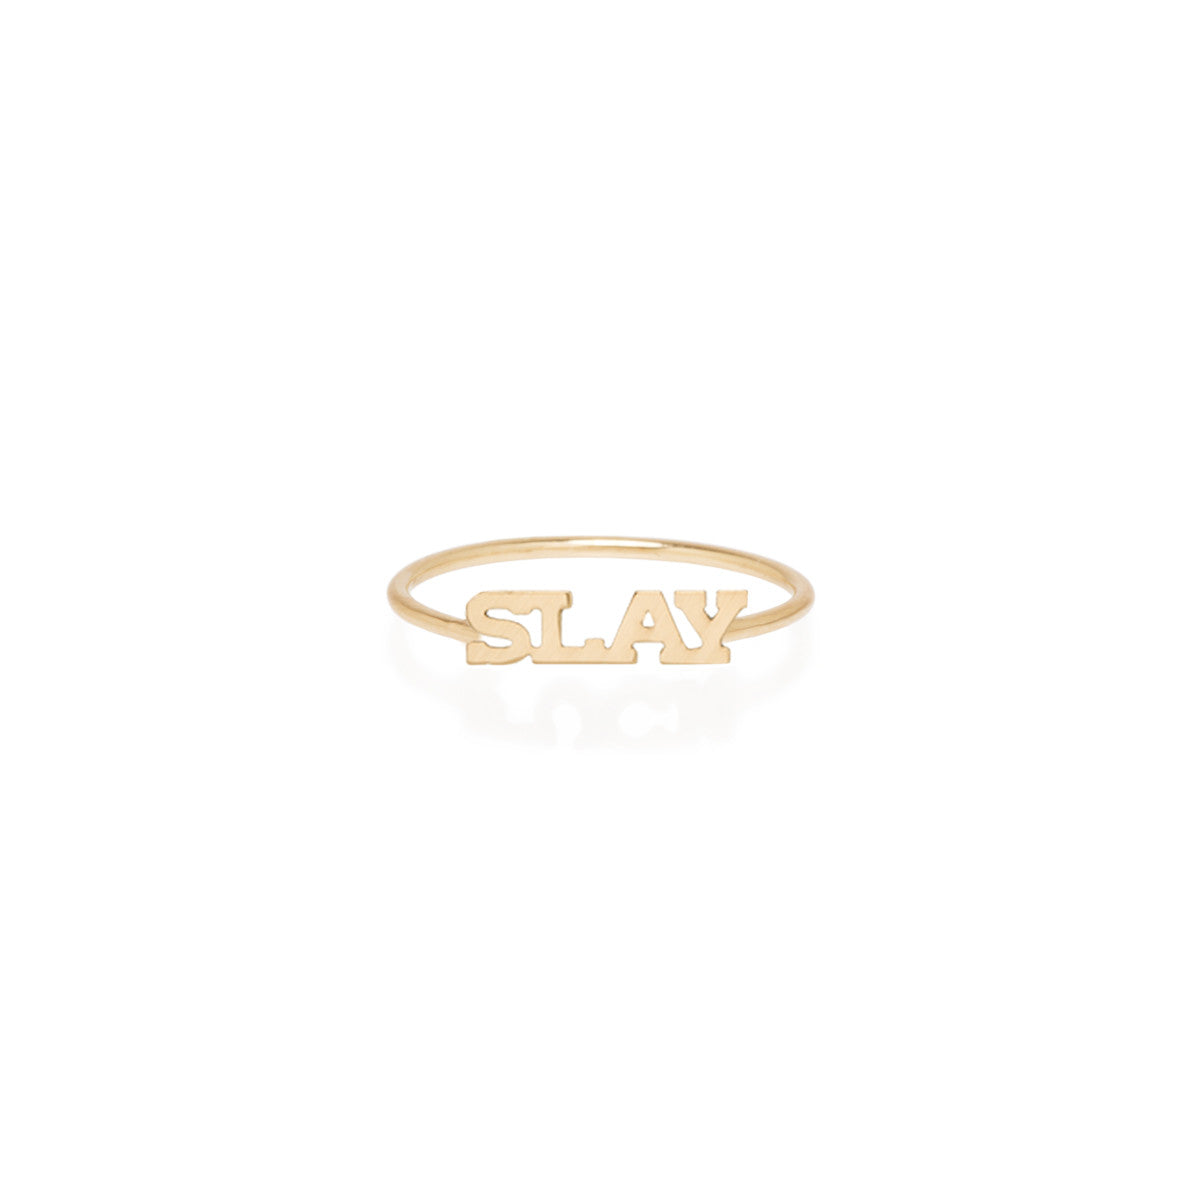 Zoë Chicco 14kt Yellow Gold Itty Bitty SLAY Ring